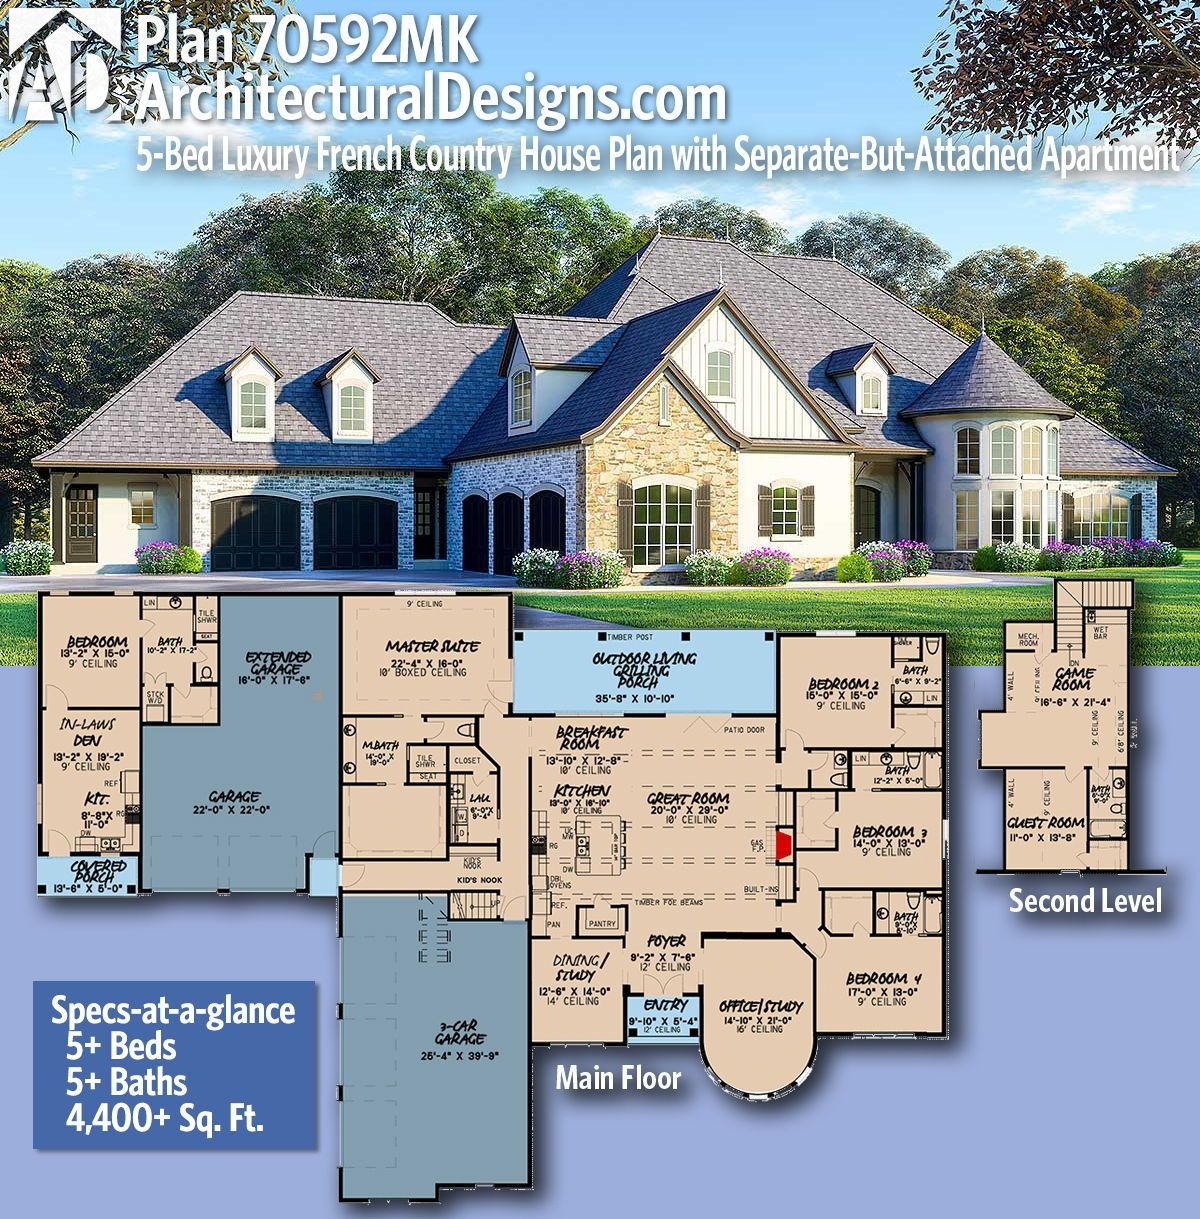 Plan 70592MK: 5-Bed Luxury French Country House Plan with ...